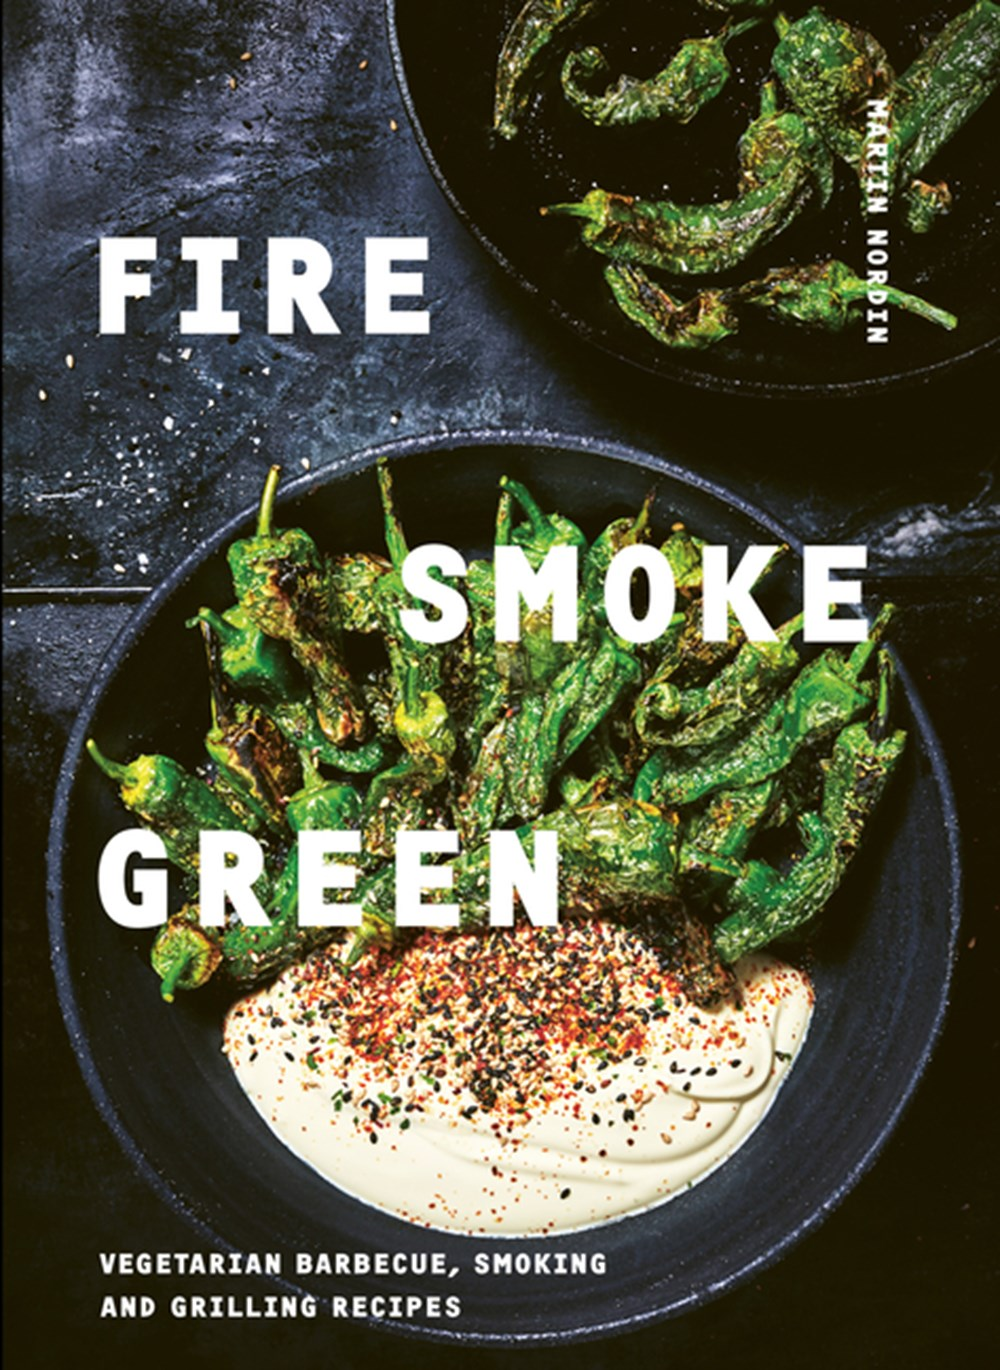 Fire, Smoke, Green Vegetarian Barbecue, Smoking and Grilling Recipes